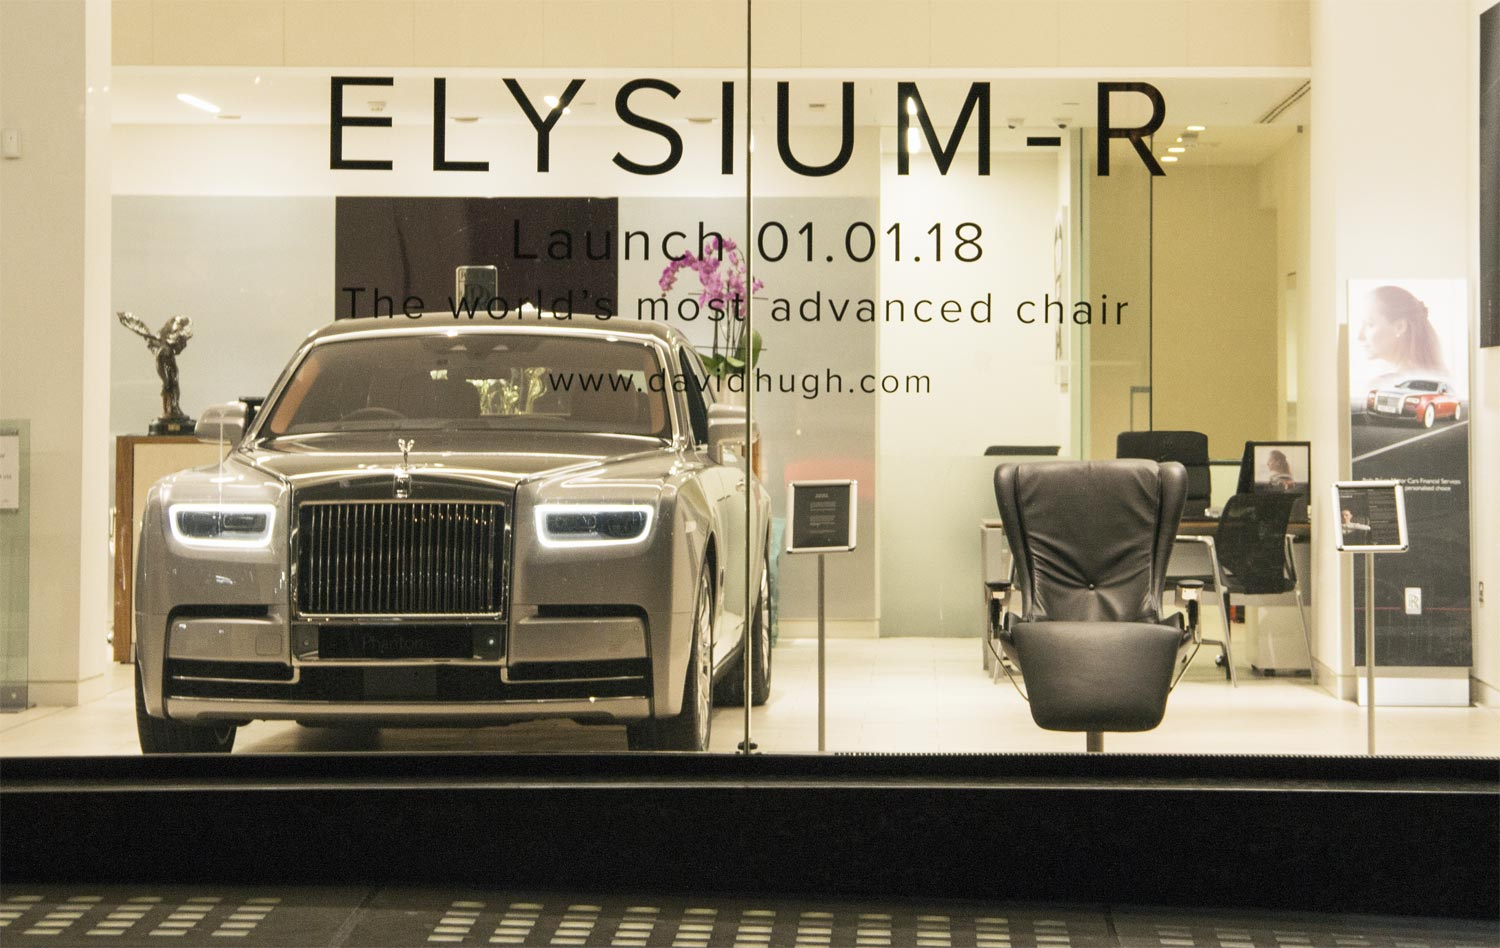 Elysium-R, the Roll-Royce of Chairs Comes to the Heart of London 4